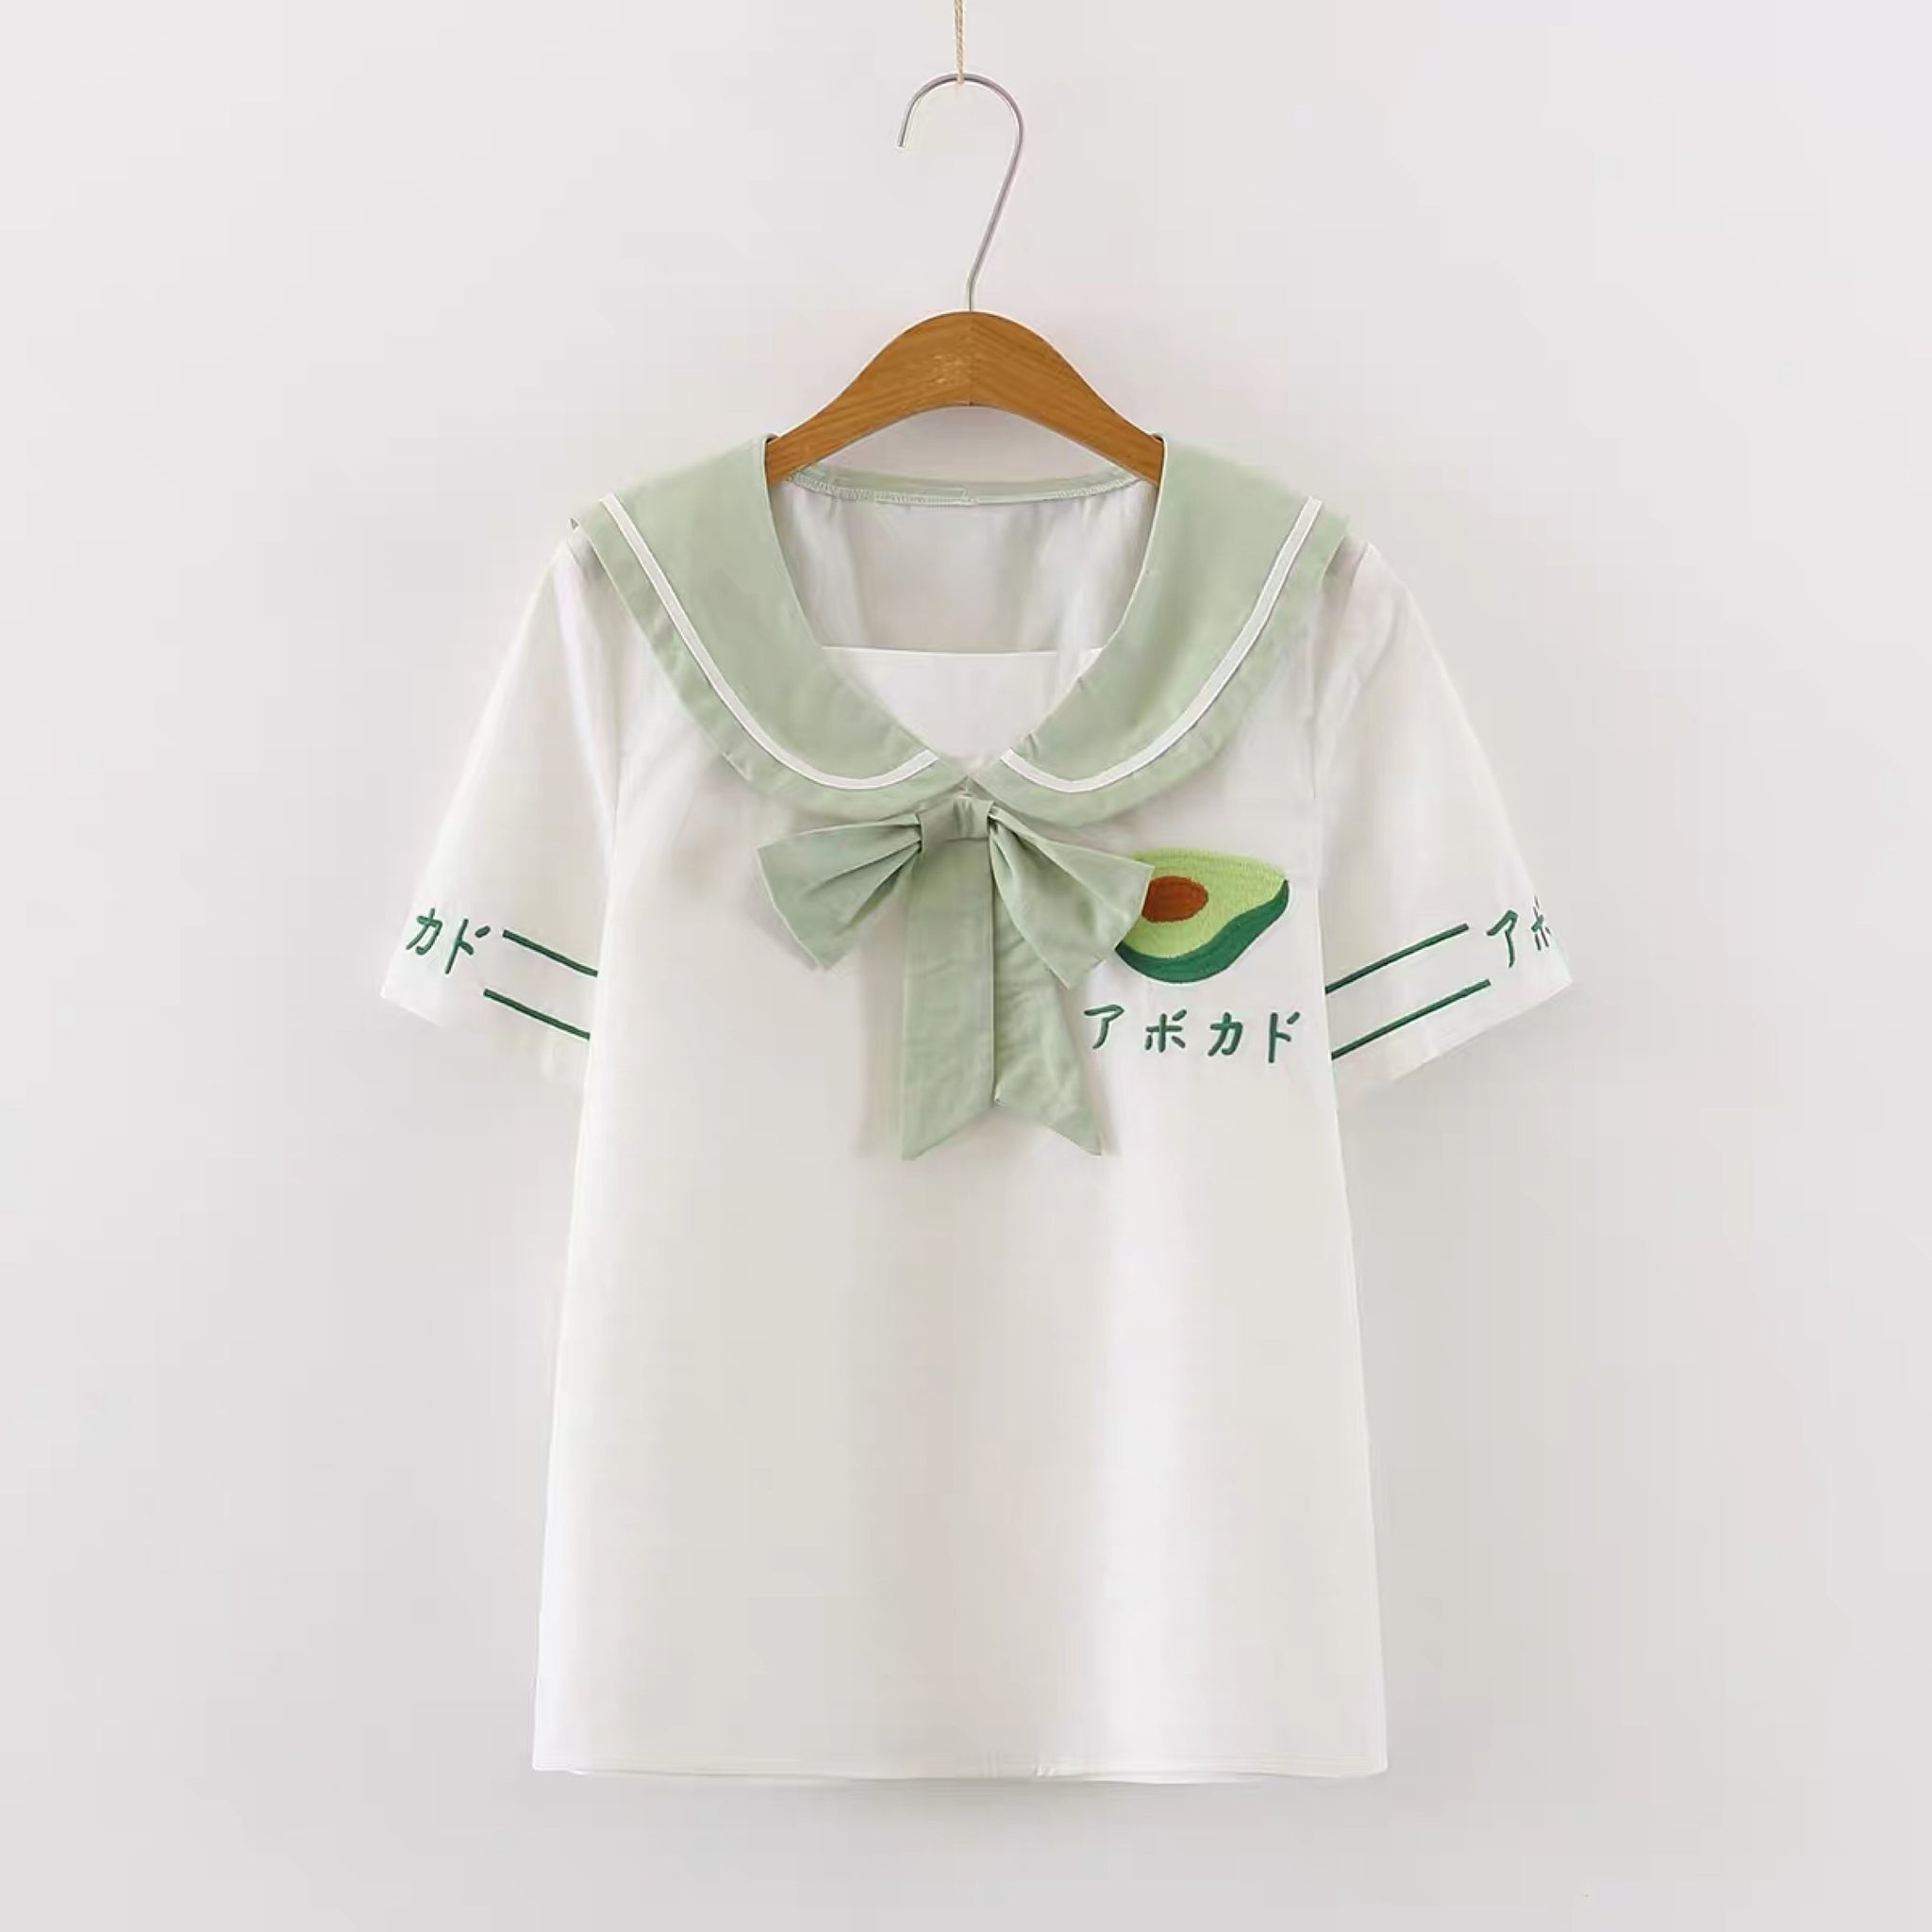 Cute Avocado T-shirt